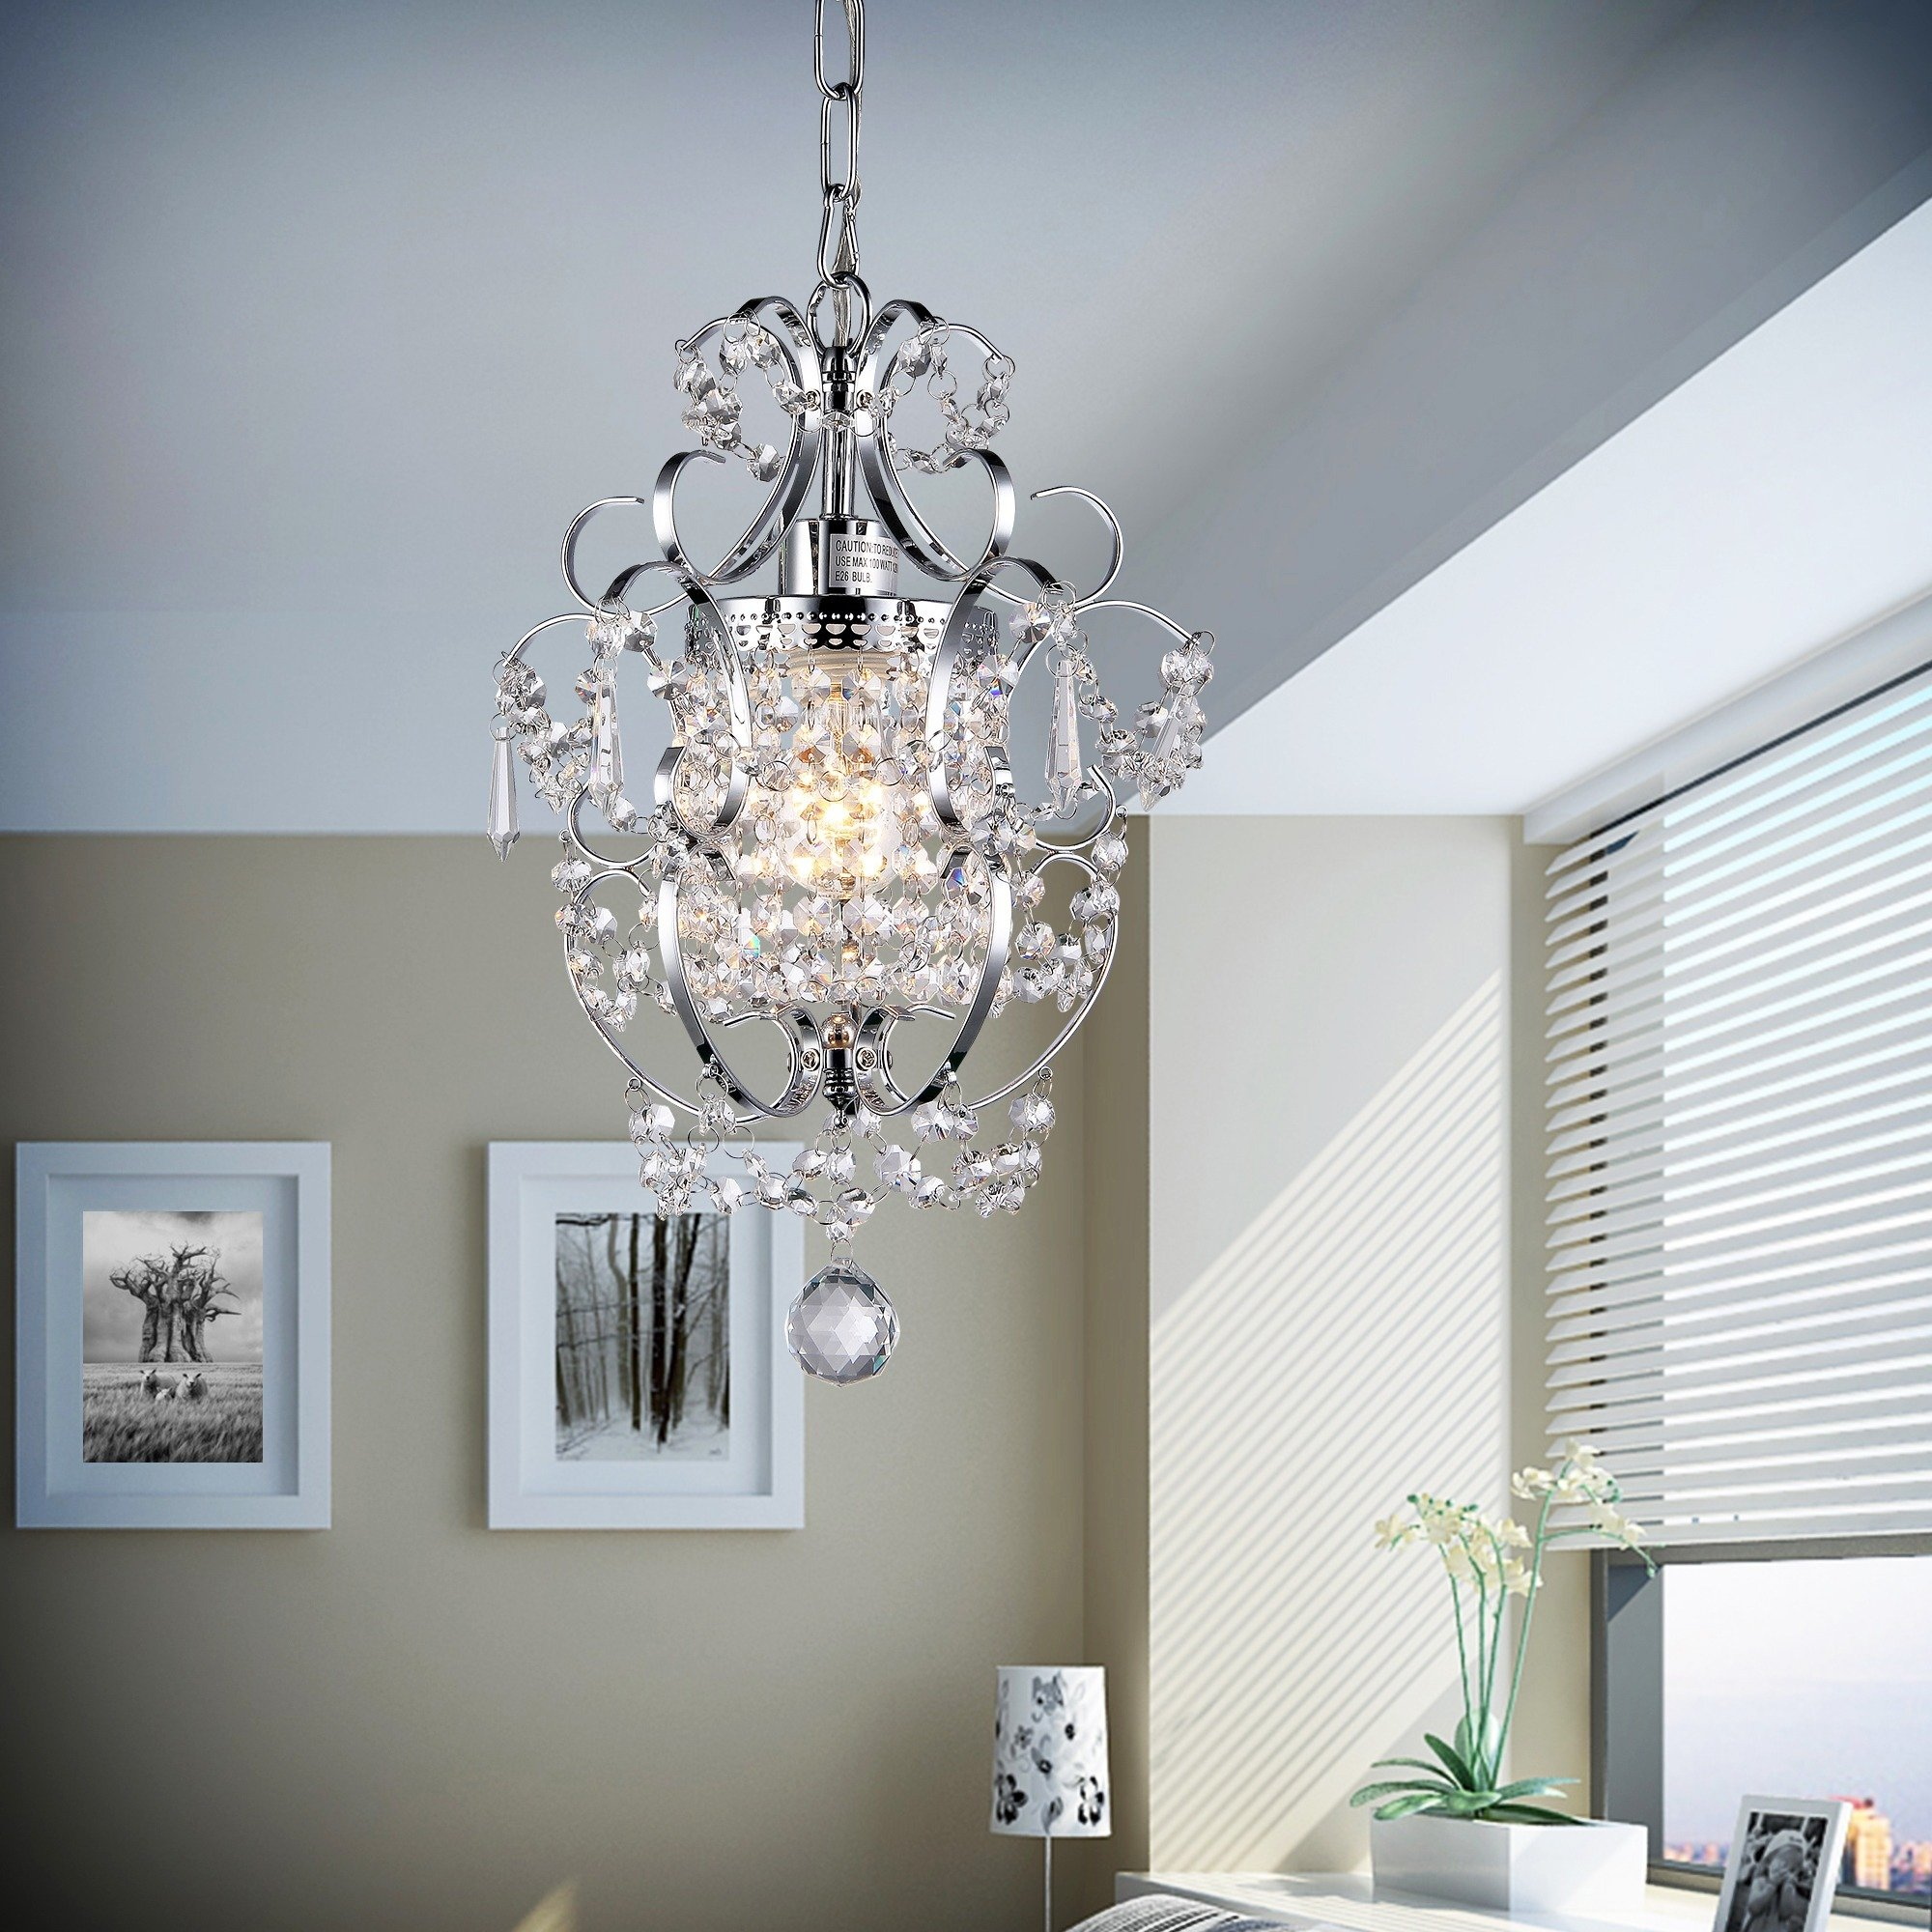 Whse of Tiffany RL4025 Jess Crystal Chandelier, 1 11'' x 15'', Chrome by Whse of Tiffany (Image #2)